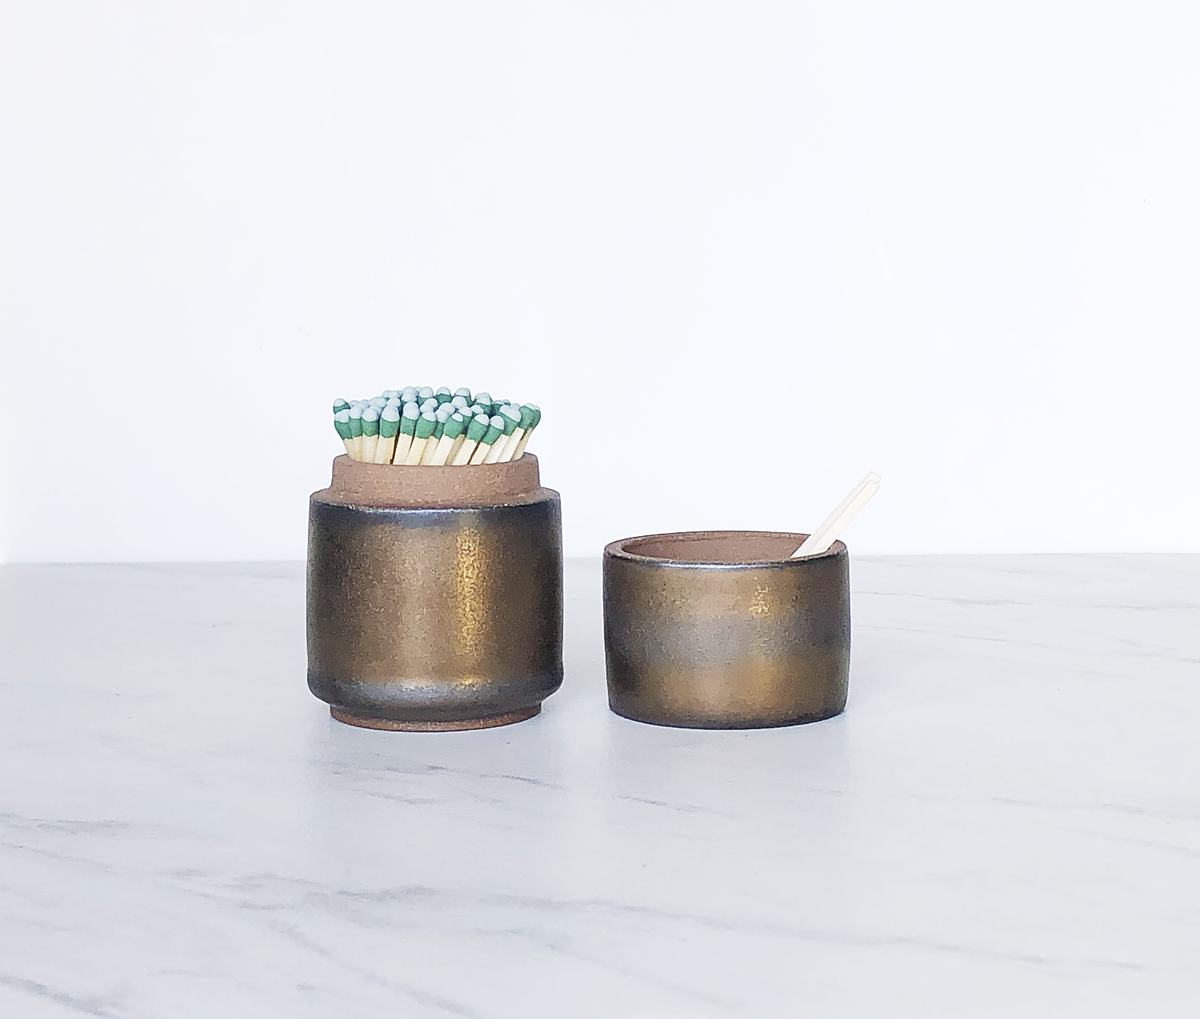 Image of Limited Edition : Ceramic match holder with lid, glazed in bronze